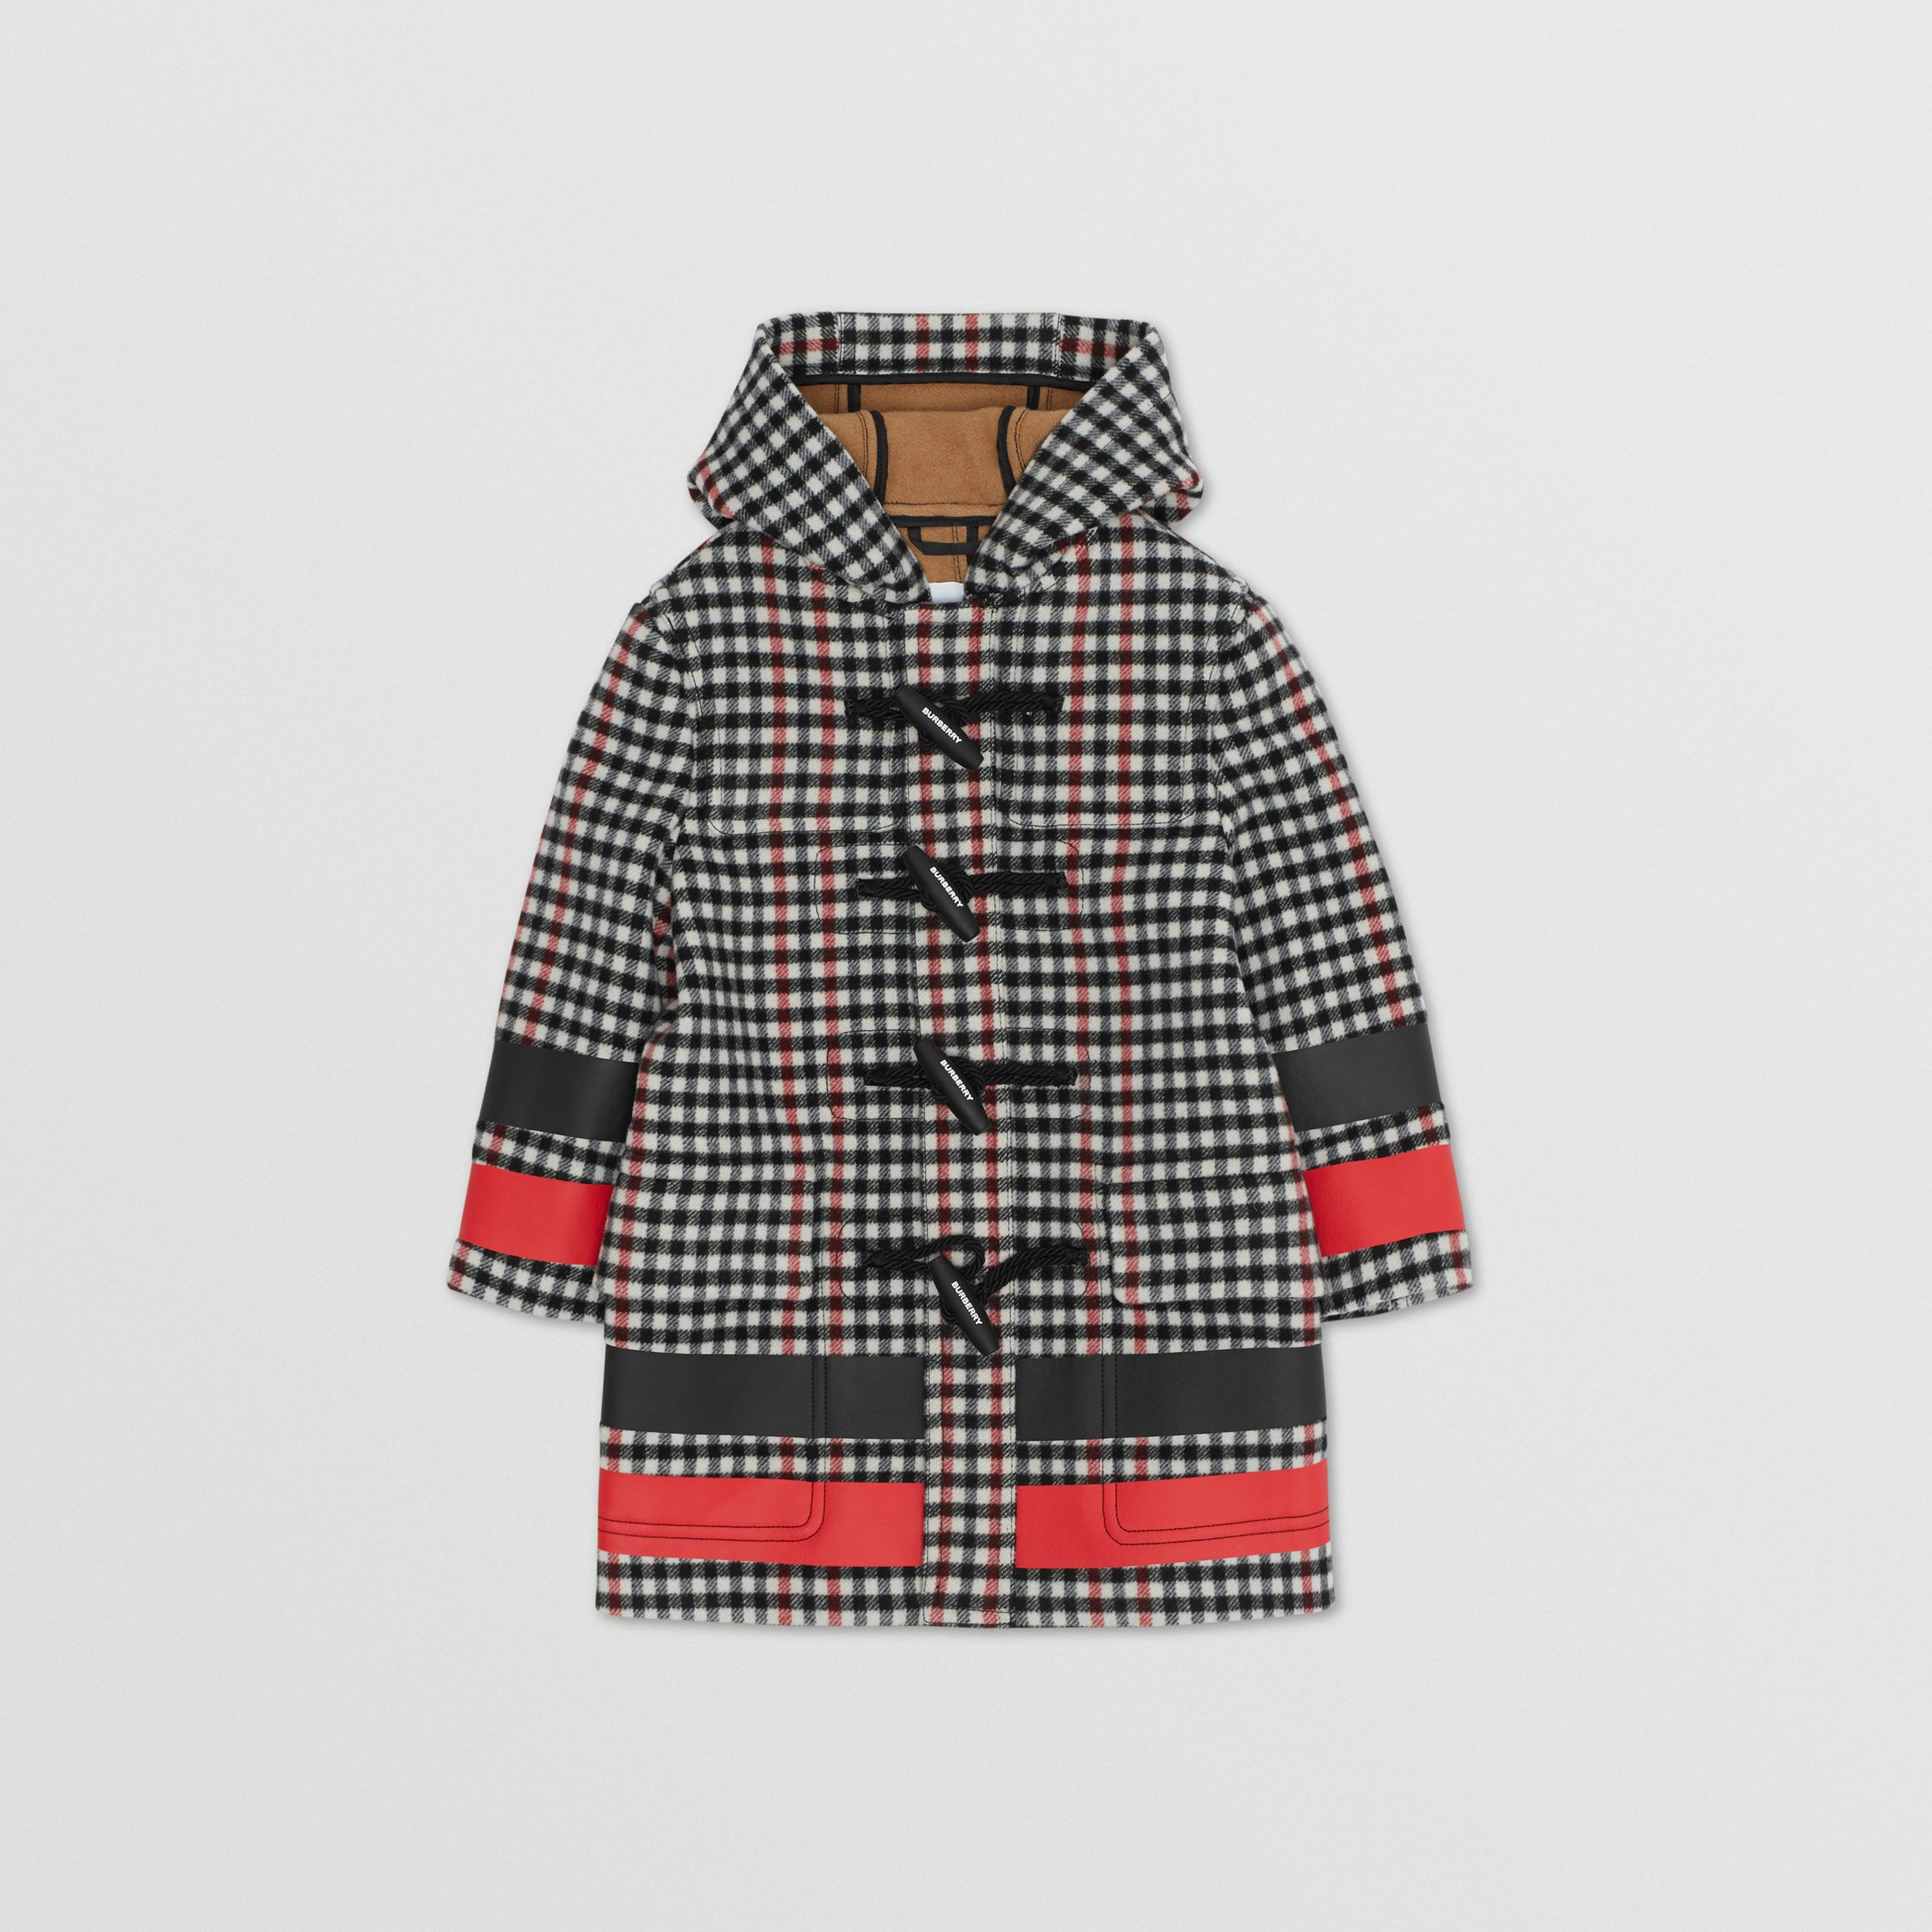 Stripe Print Check Wool Duffle Coat in Black | Burberry - 1